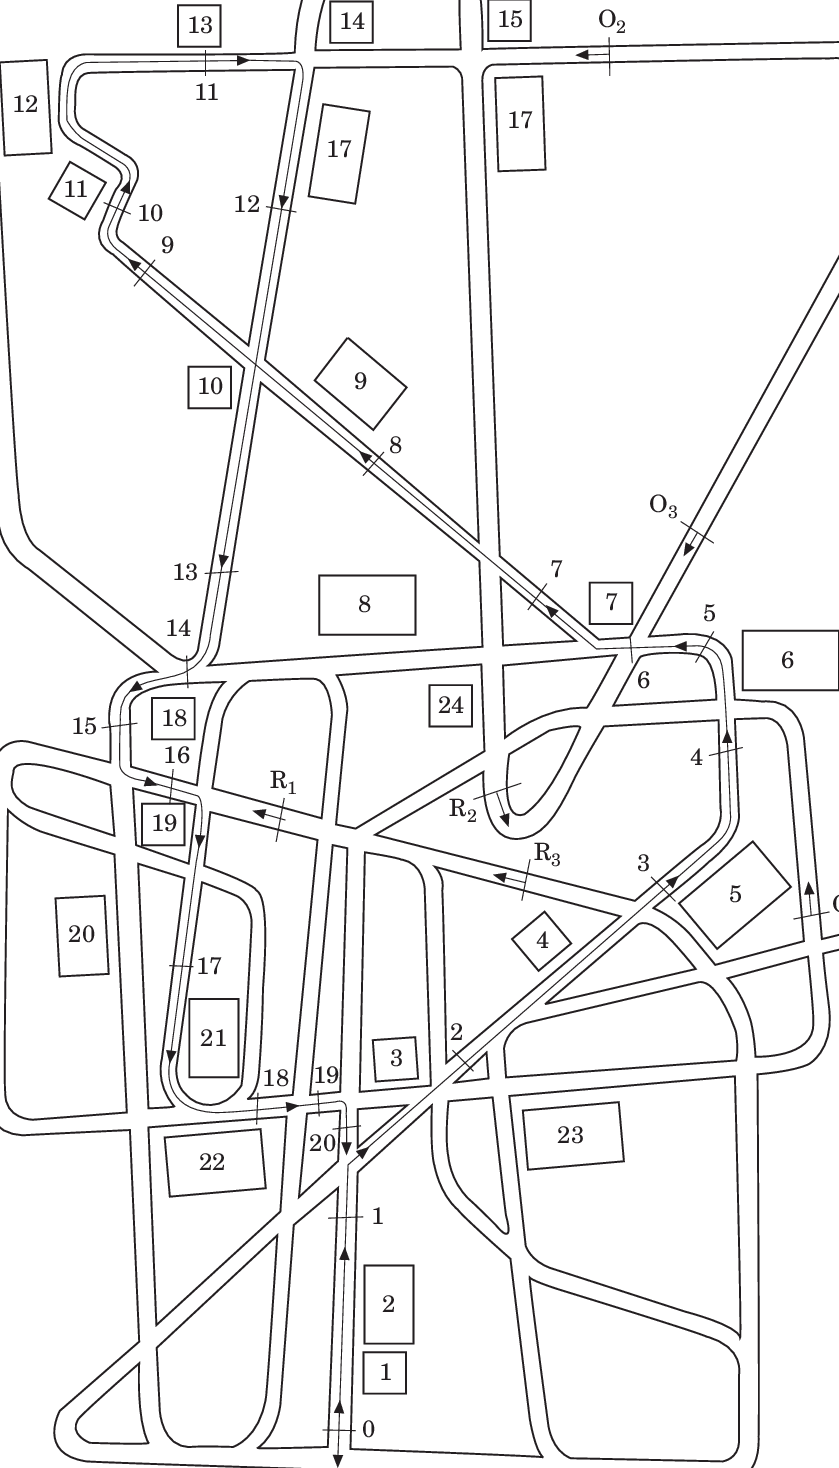 Location drawing. Map of the virtual